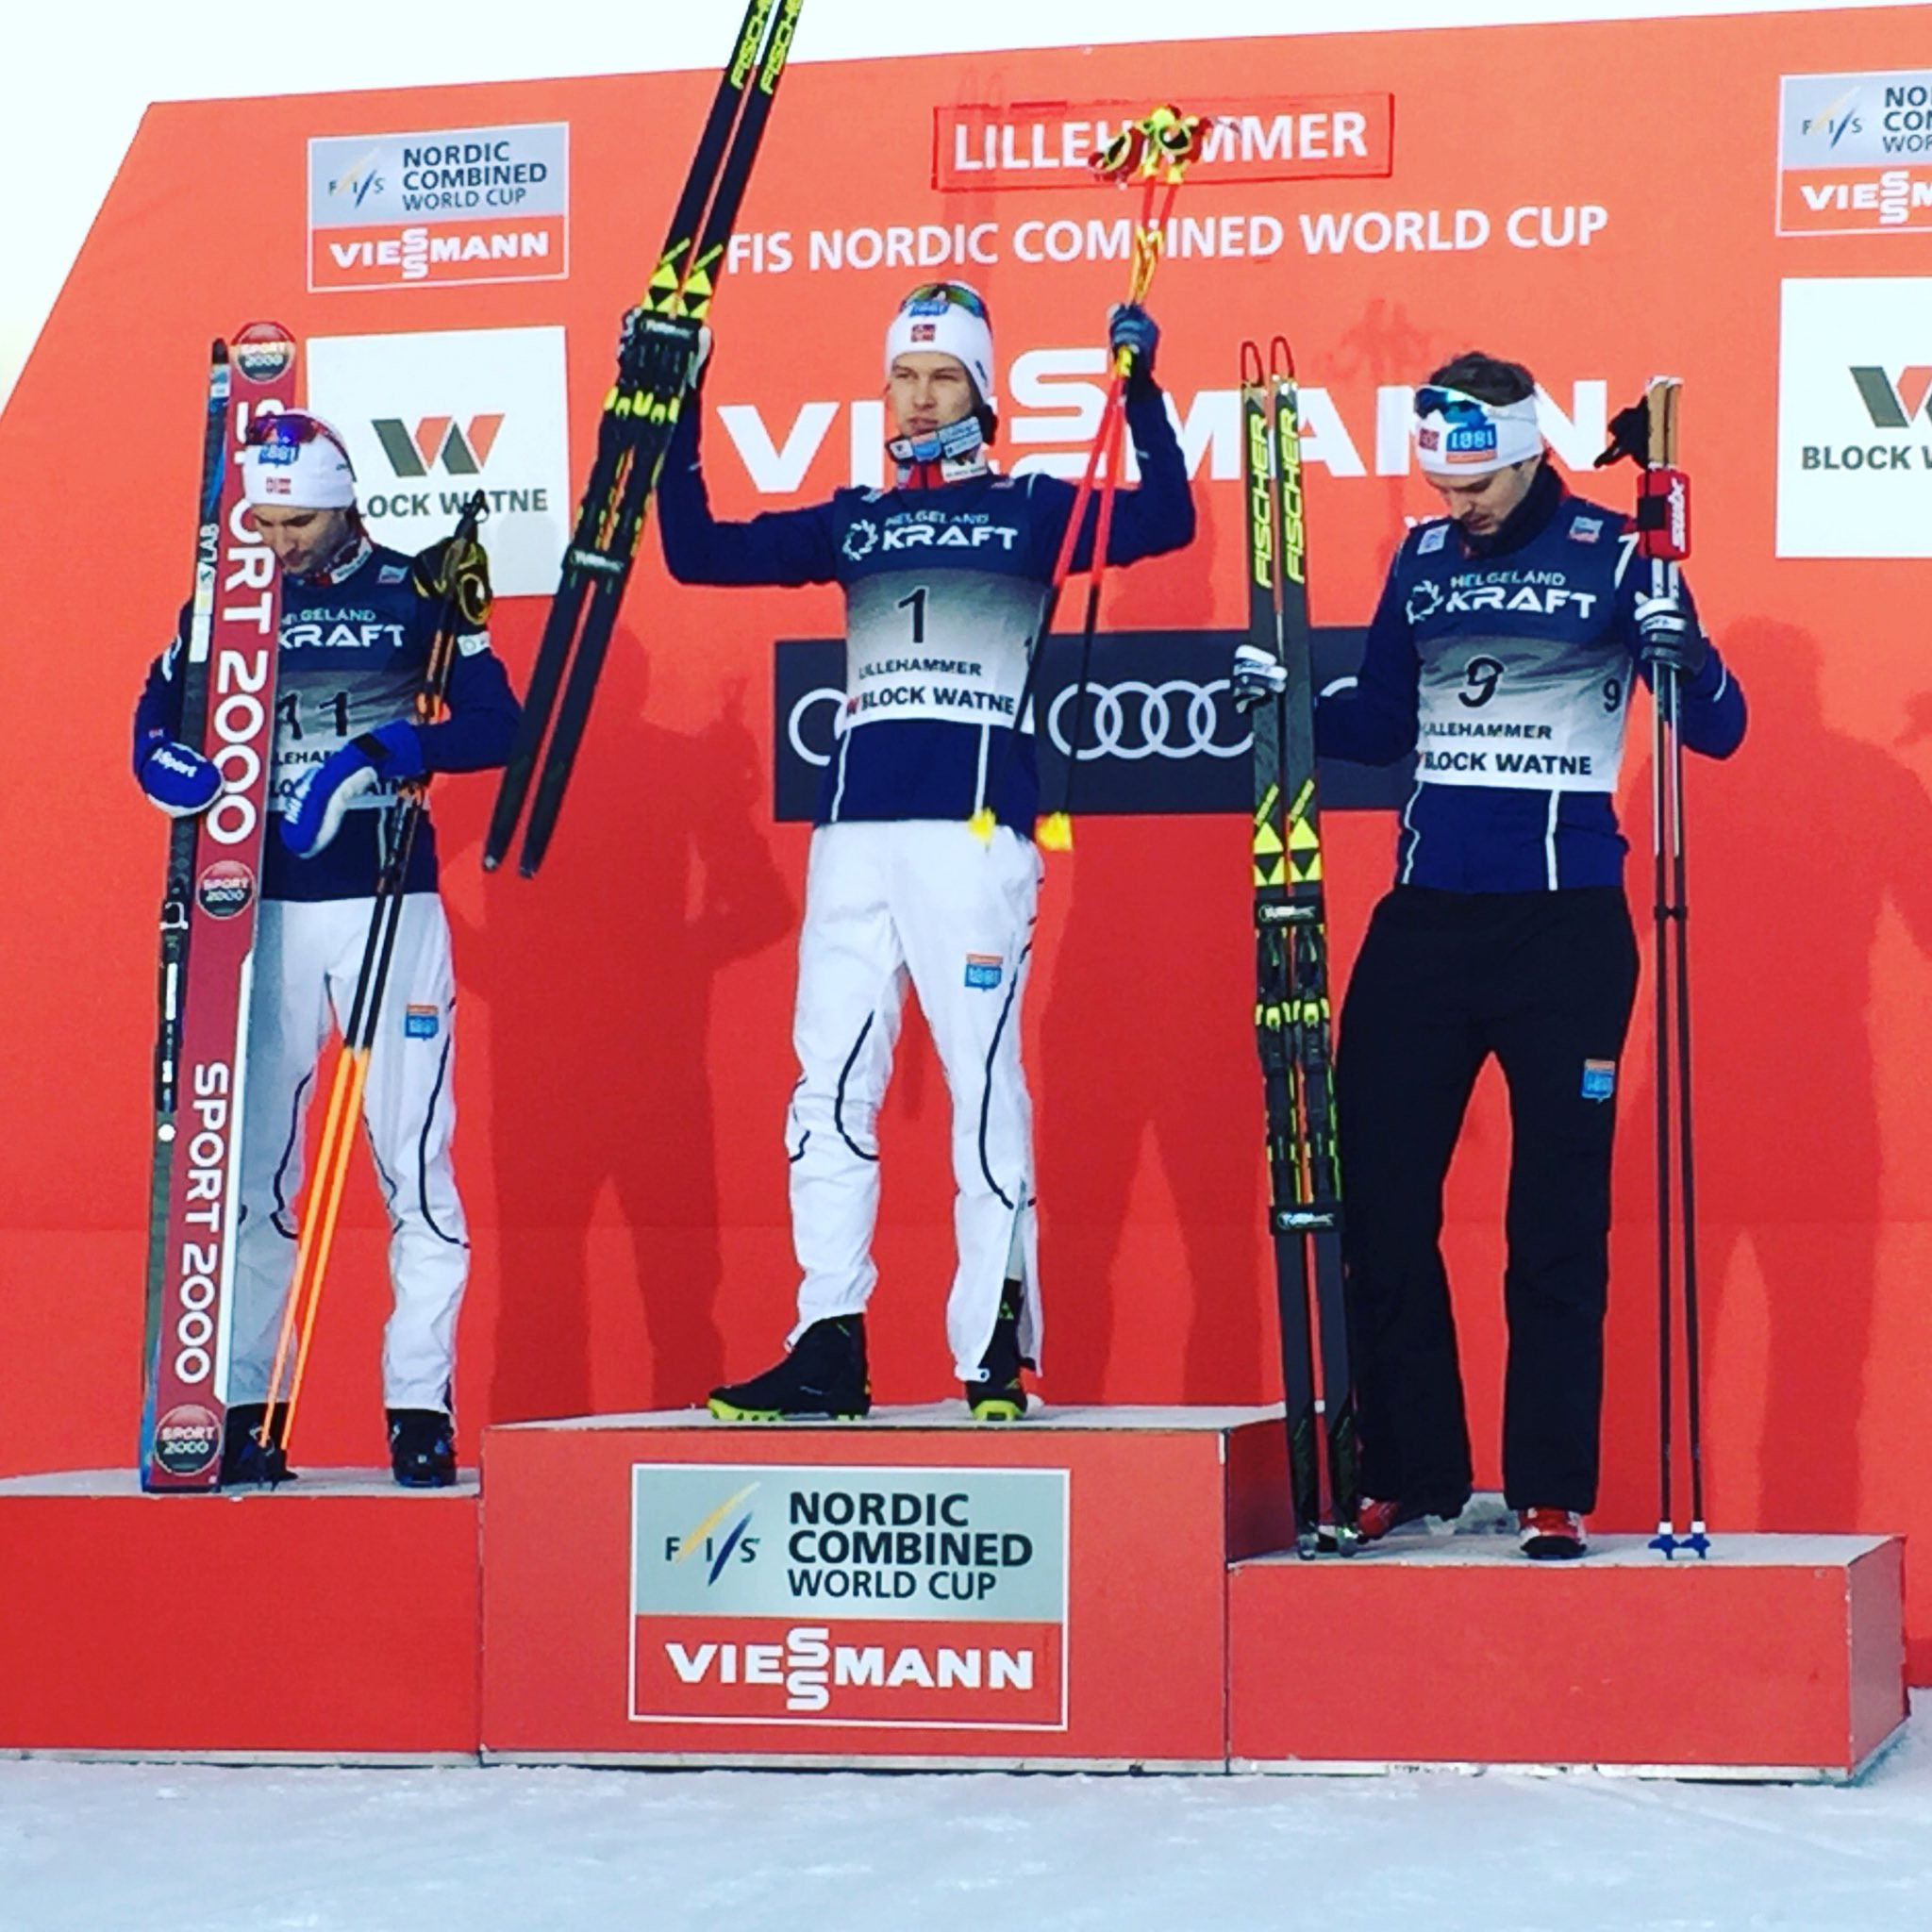 Norwegian trio sweep the boards at FIS Nordic Combined World Cup in Lillehammer